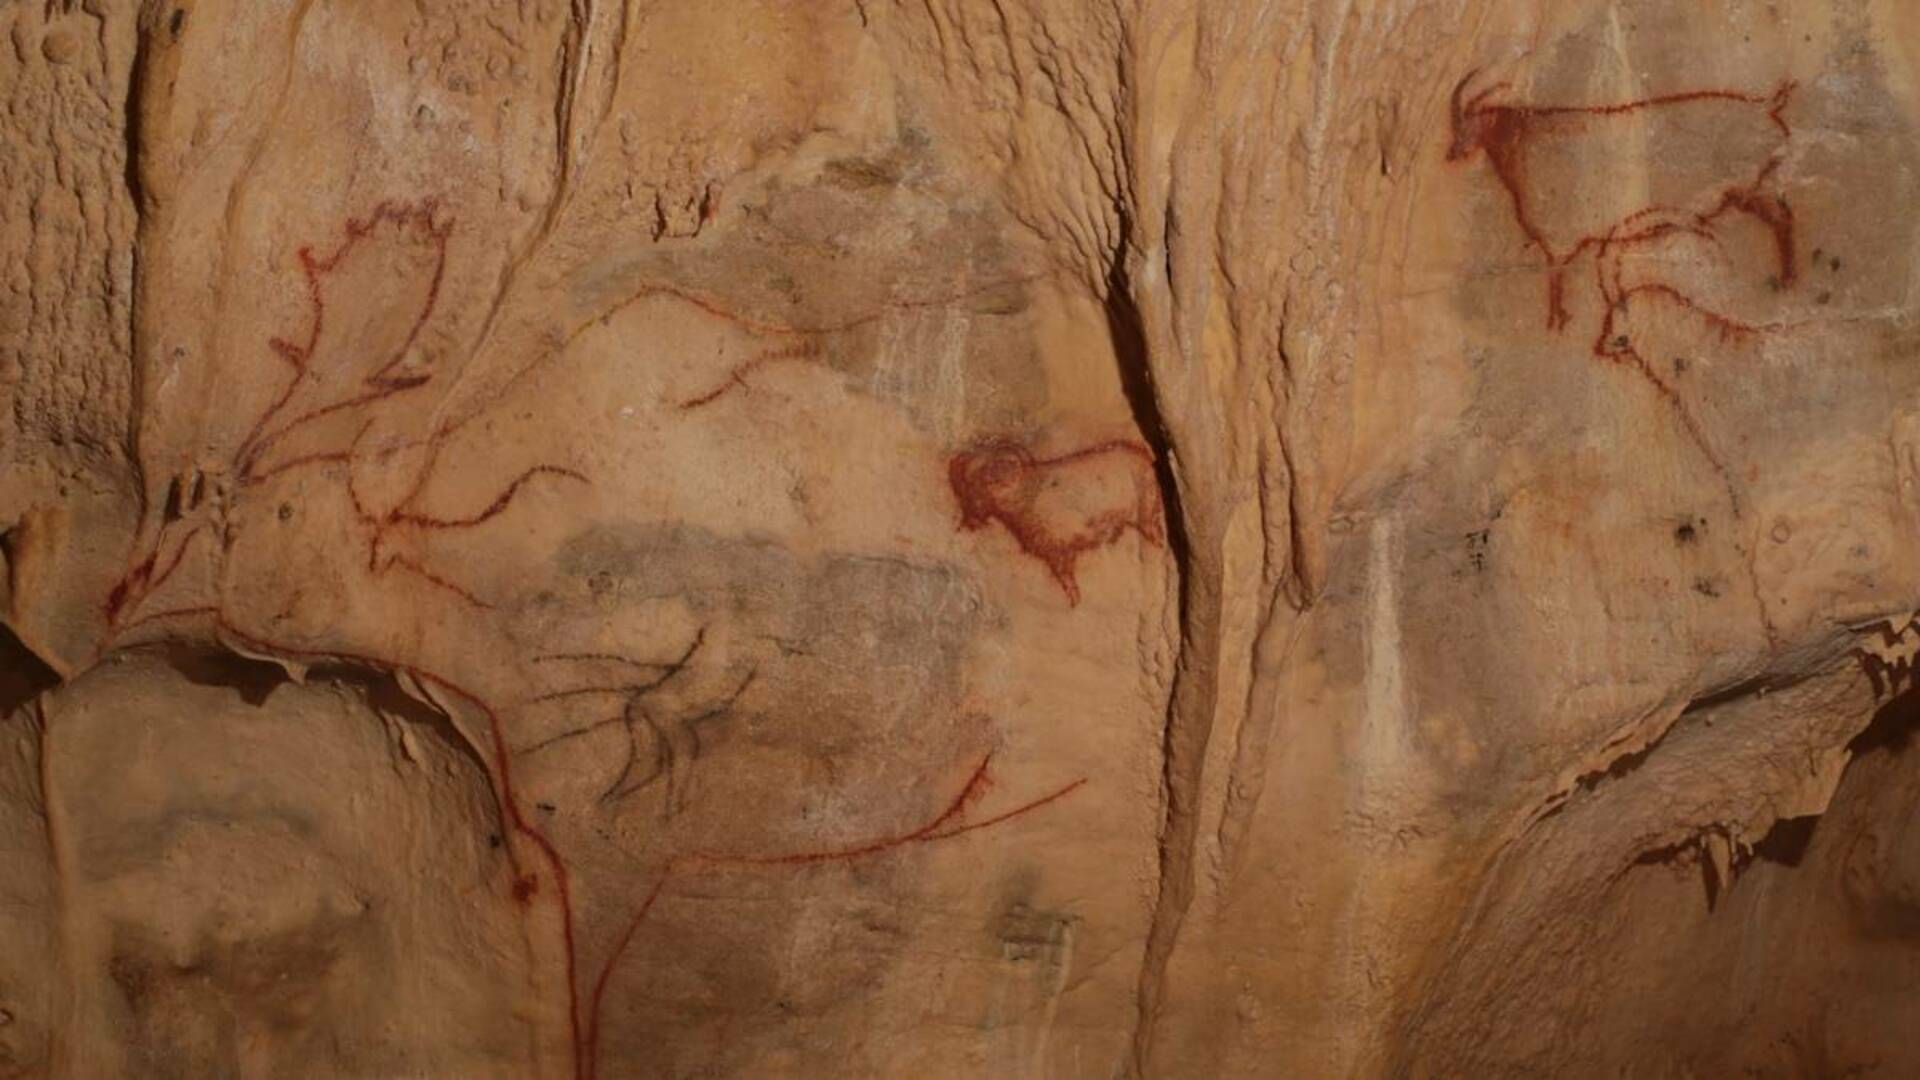 Prehistoric paintings in the caves of Cougnac